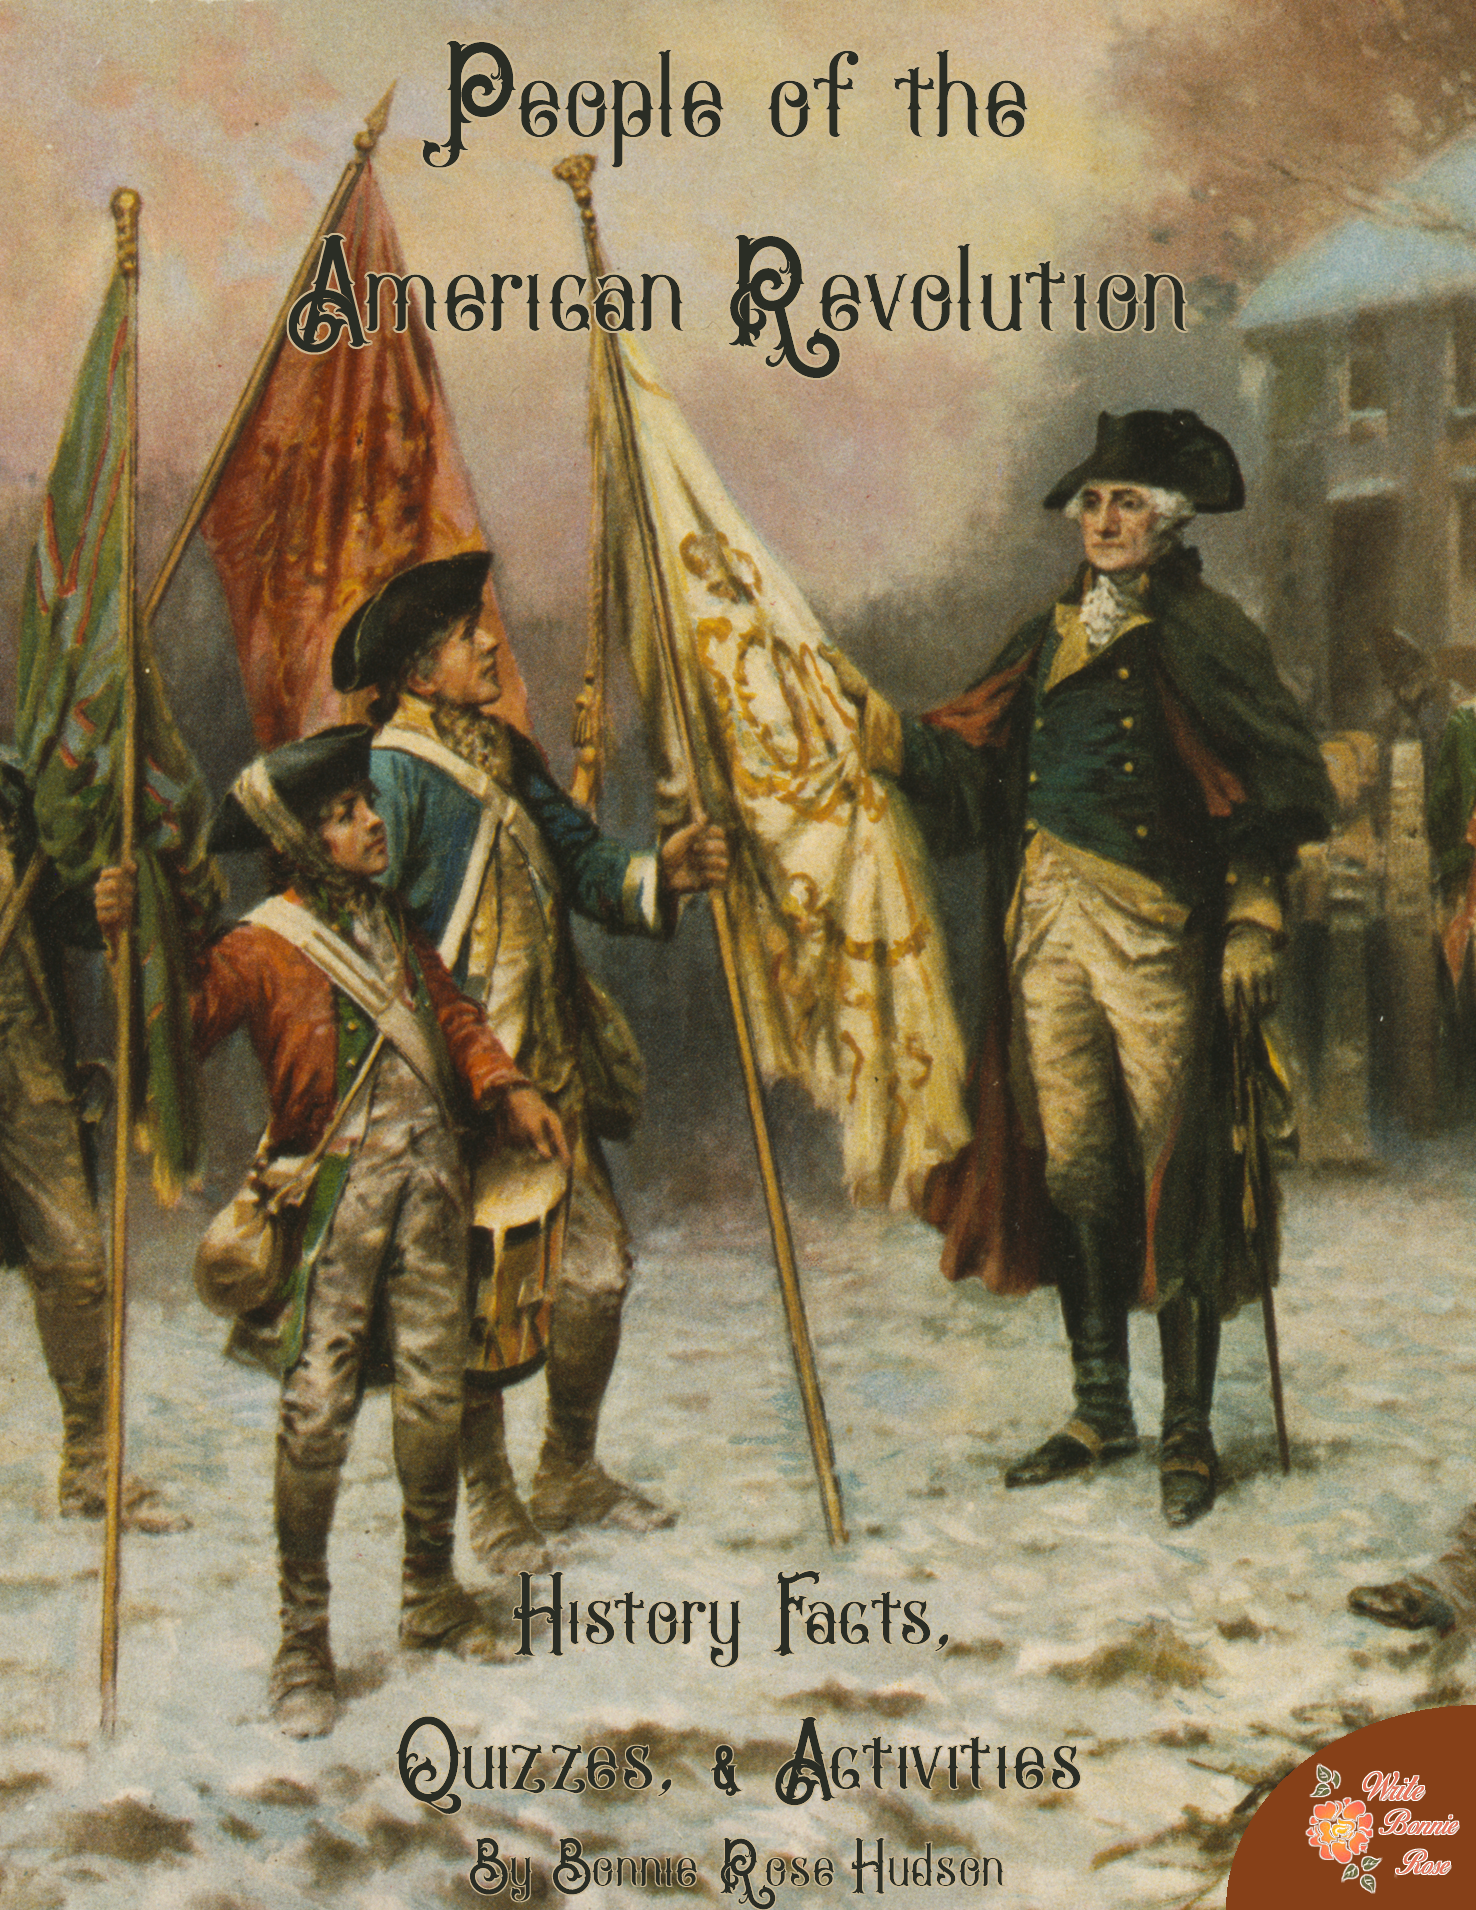 the lives of women during the american revolution Contributions of african americans, native americans and women during the american revolution the revolutionary war made little impact on their lives.